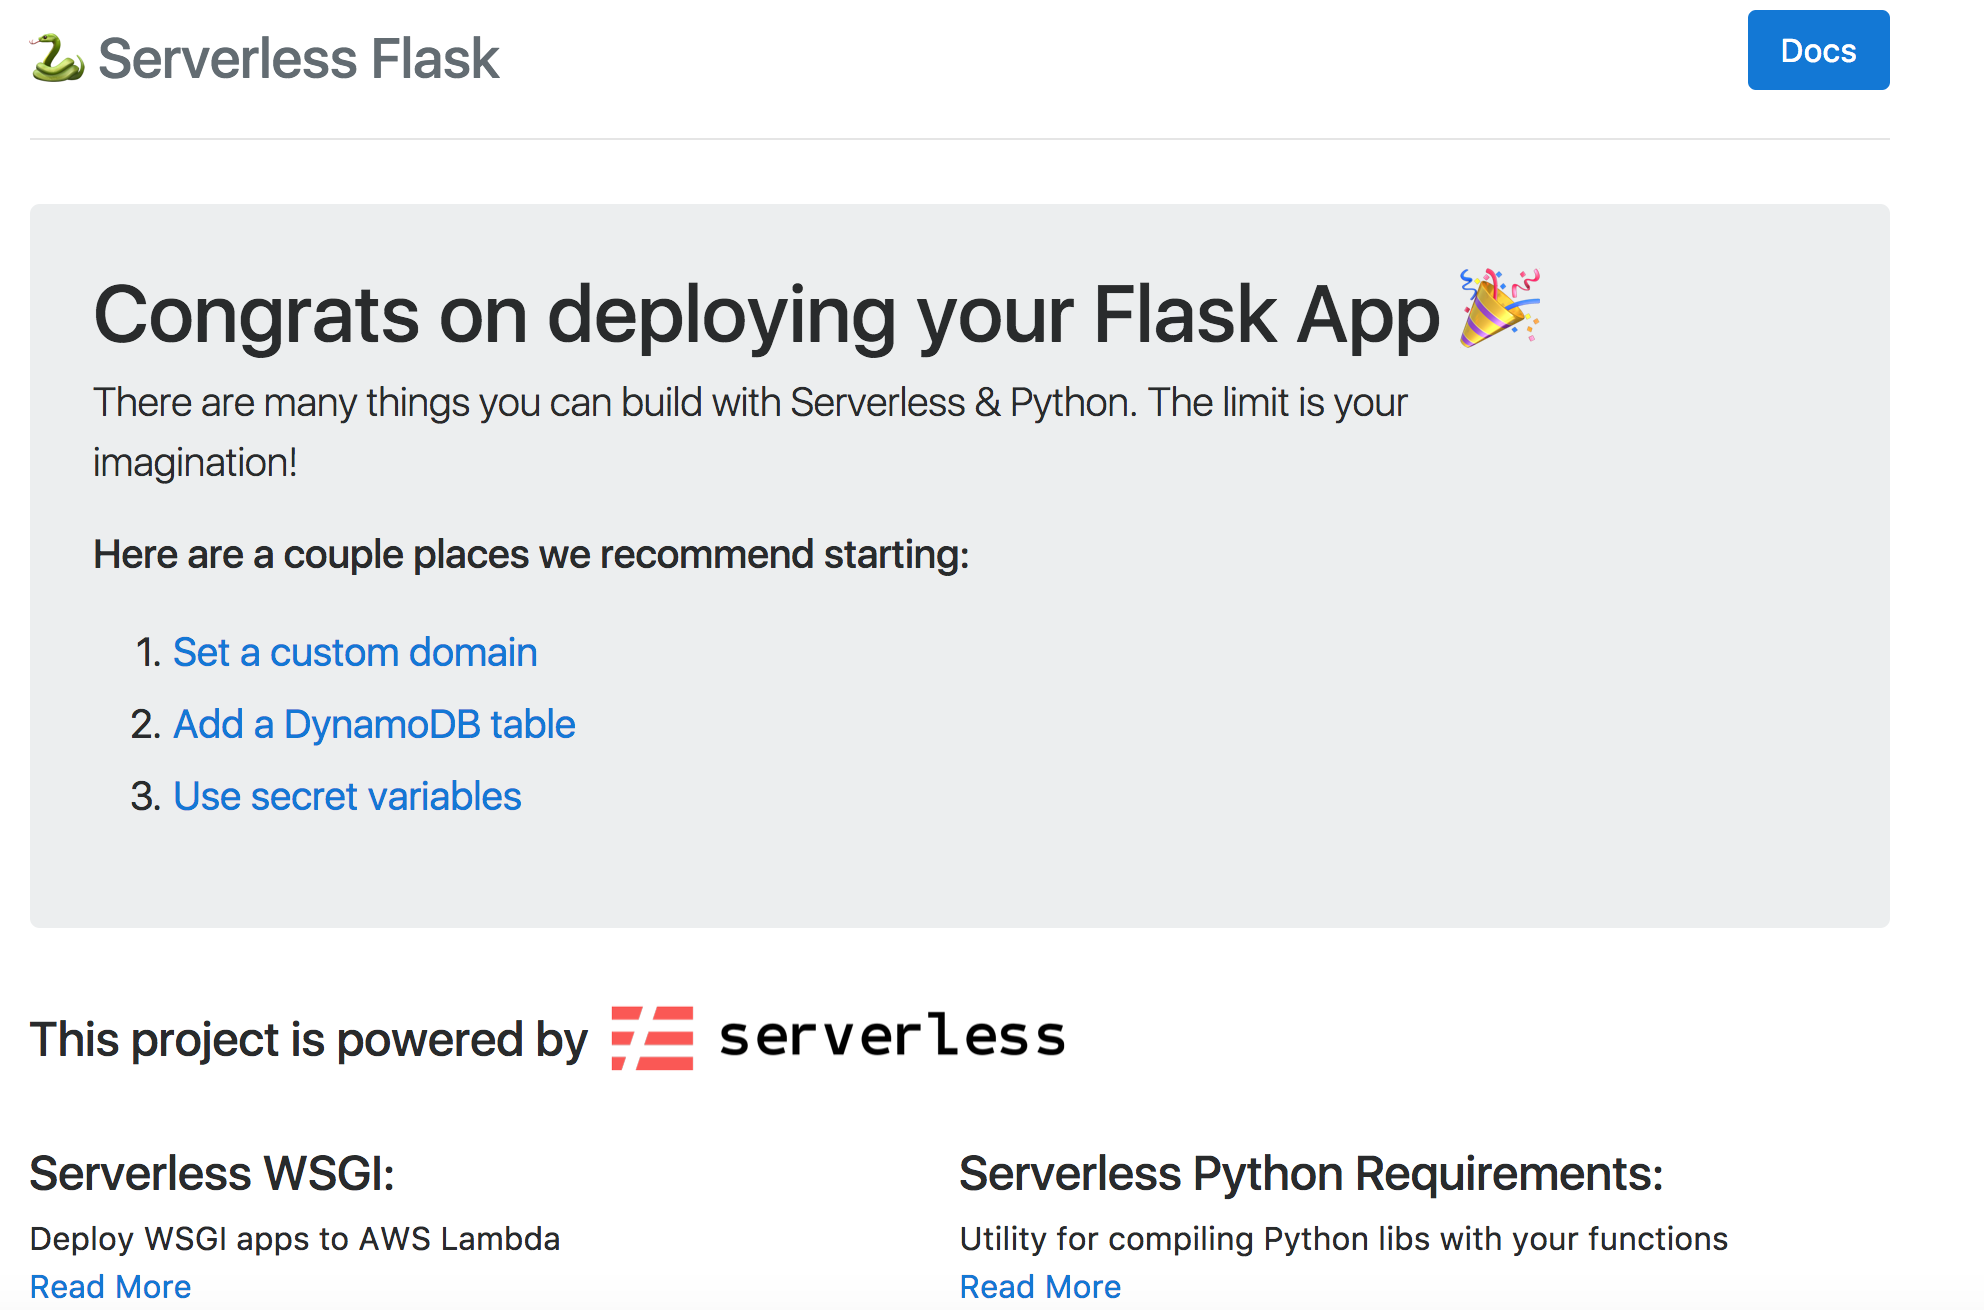 Build a Python REST API with Serverless, Lambda, and DynamoDB